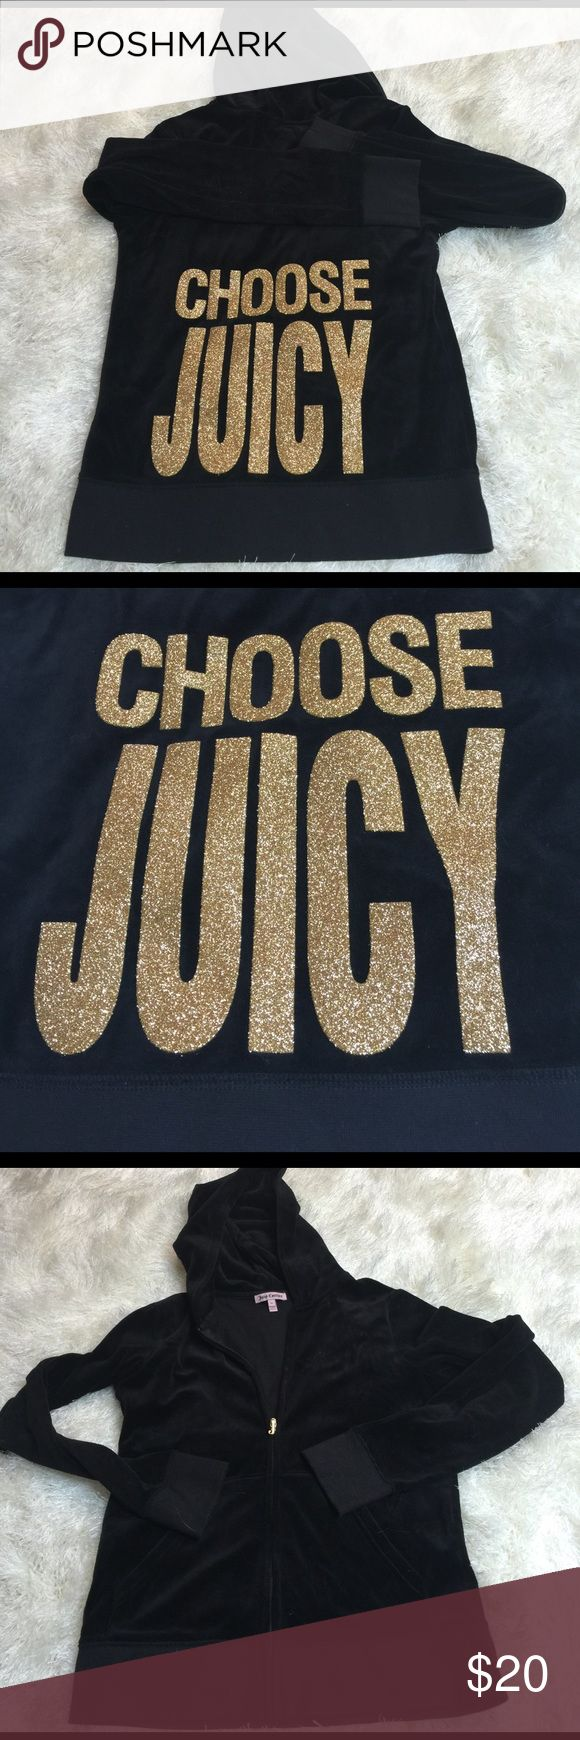 Juicy Couture zip up hoodie sz M Gorgeous! Awesome shape; no rips stains piling or fading! Zips in front. Pockets for hands. Gold J zipper. Back large glitter words. Bundling is fun; check out my other items! No price talk in comments. No trades or holds. Juicy Couture Tops Sweatshirts & Hoodies